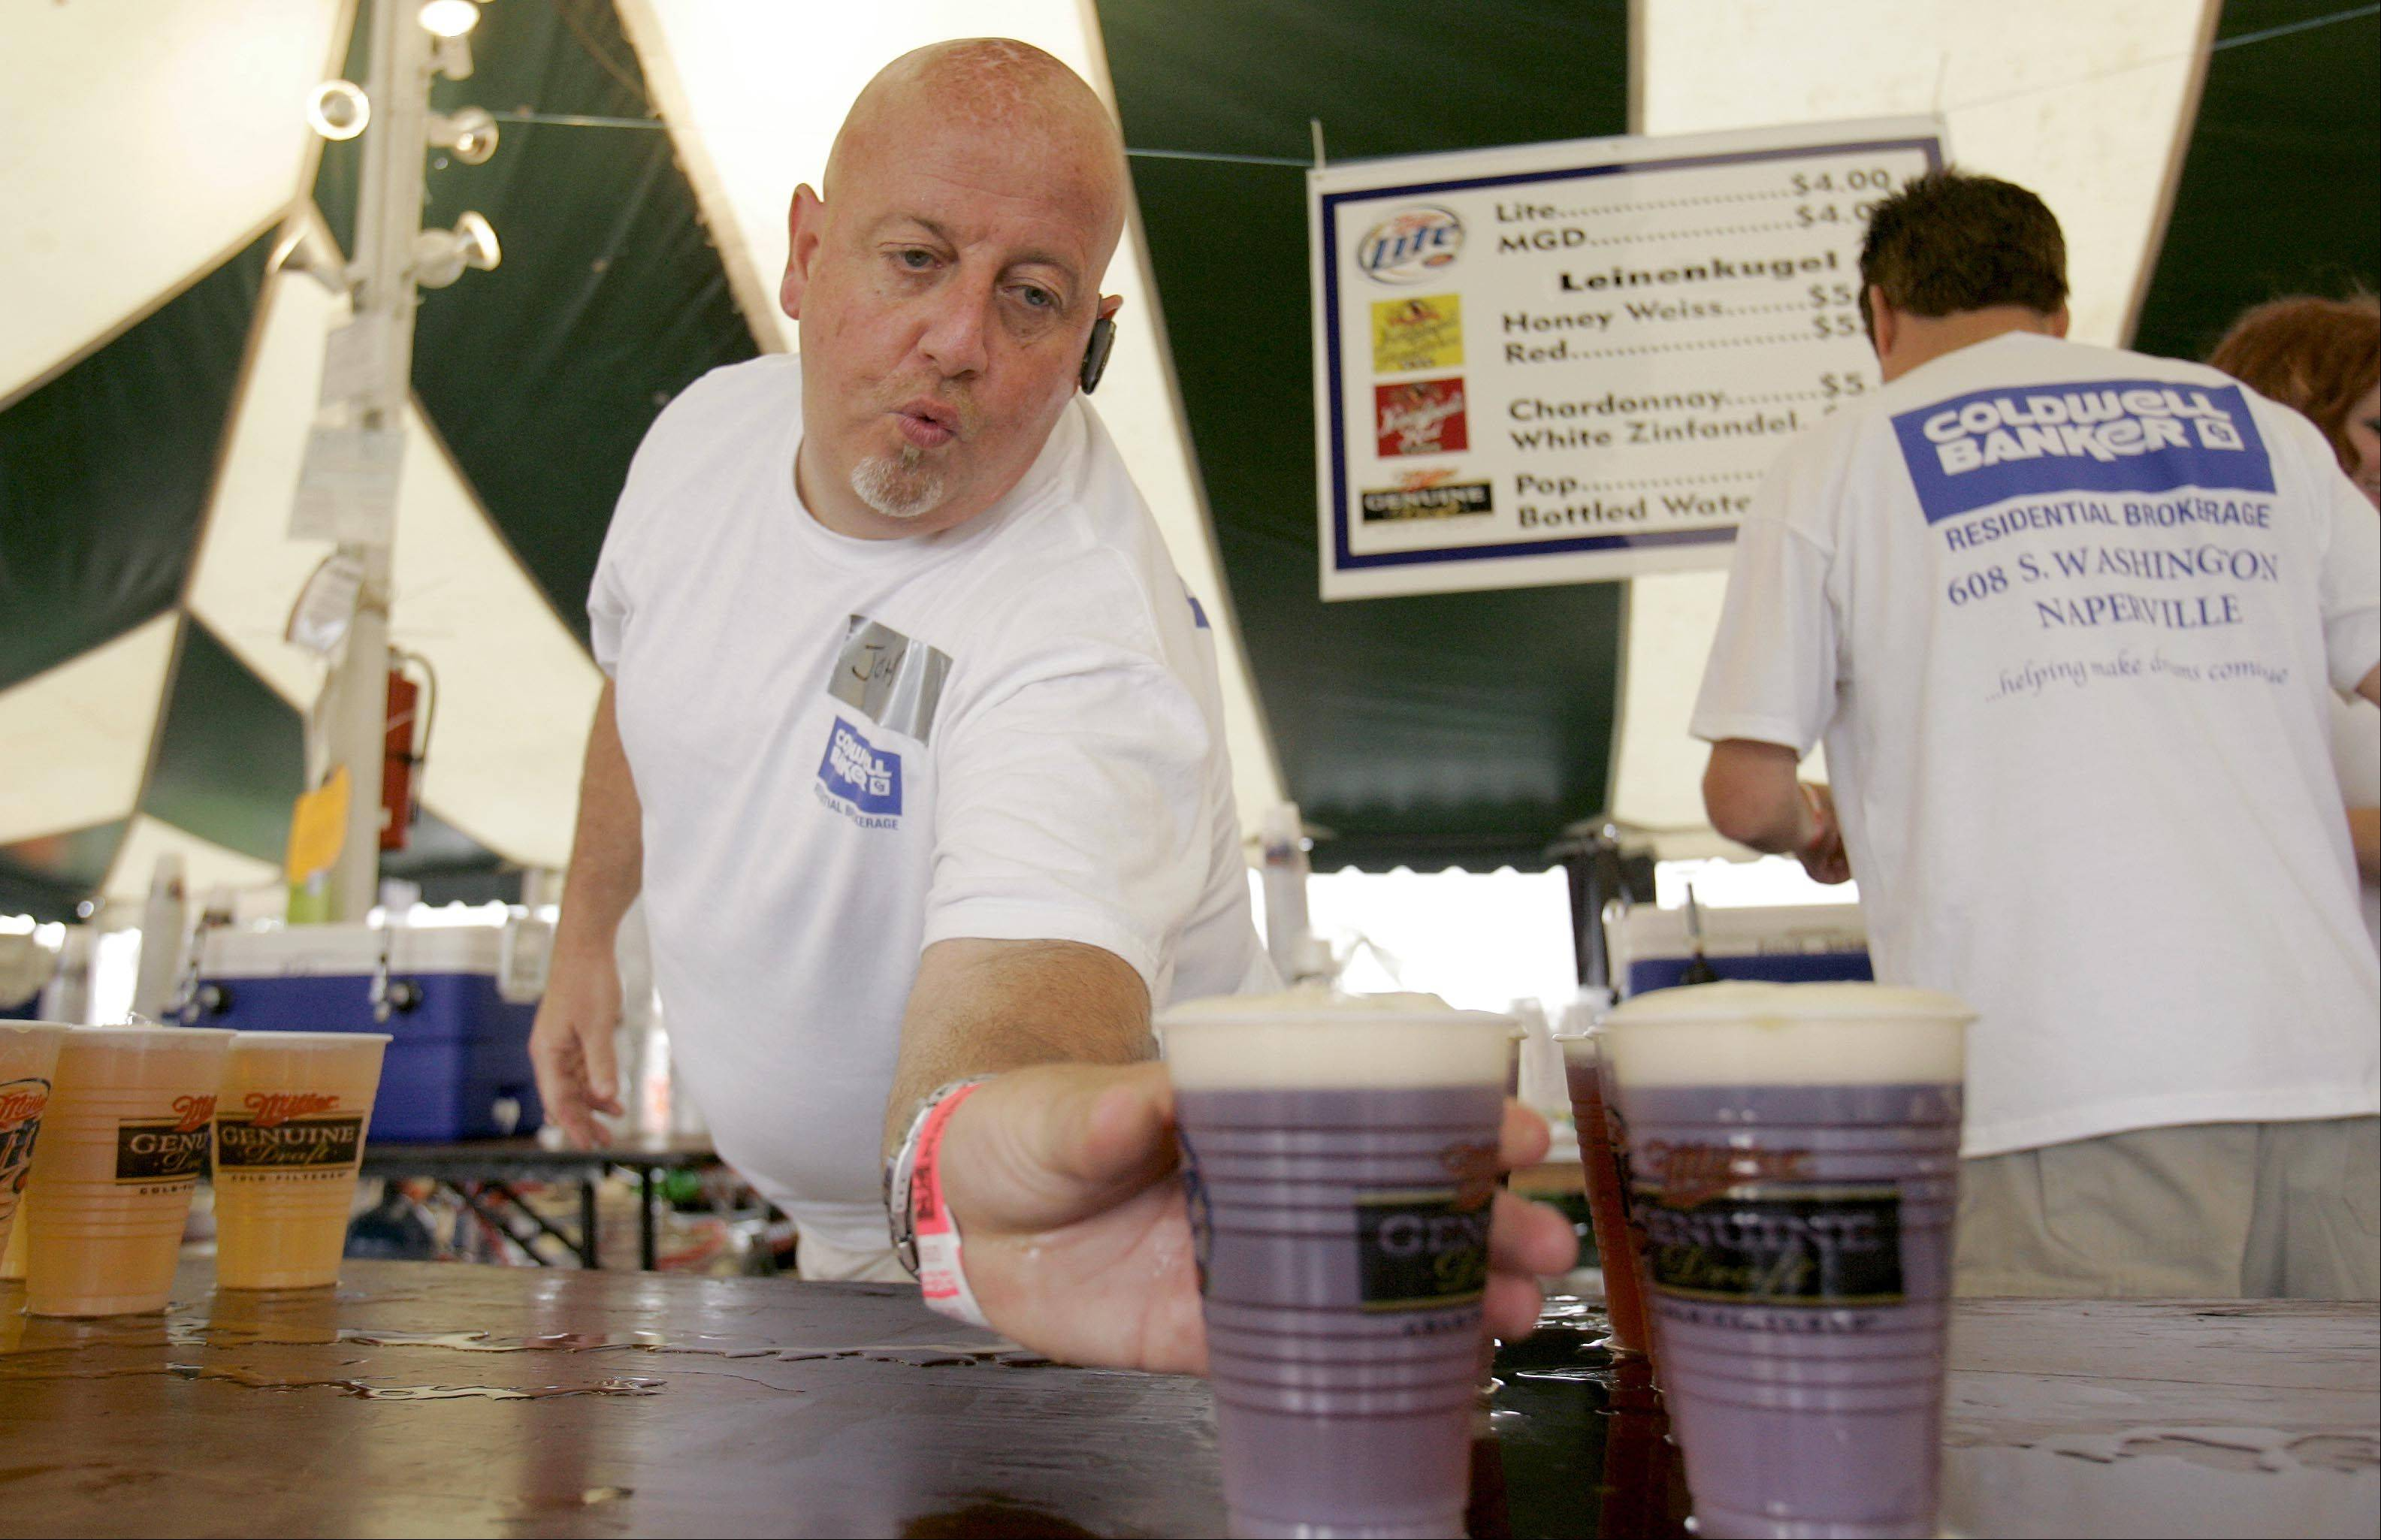 Ribfest beer tent volunteers will have more time to serve cold brews this year since they will no longer be handling money and making change between pours.